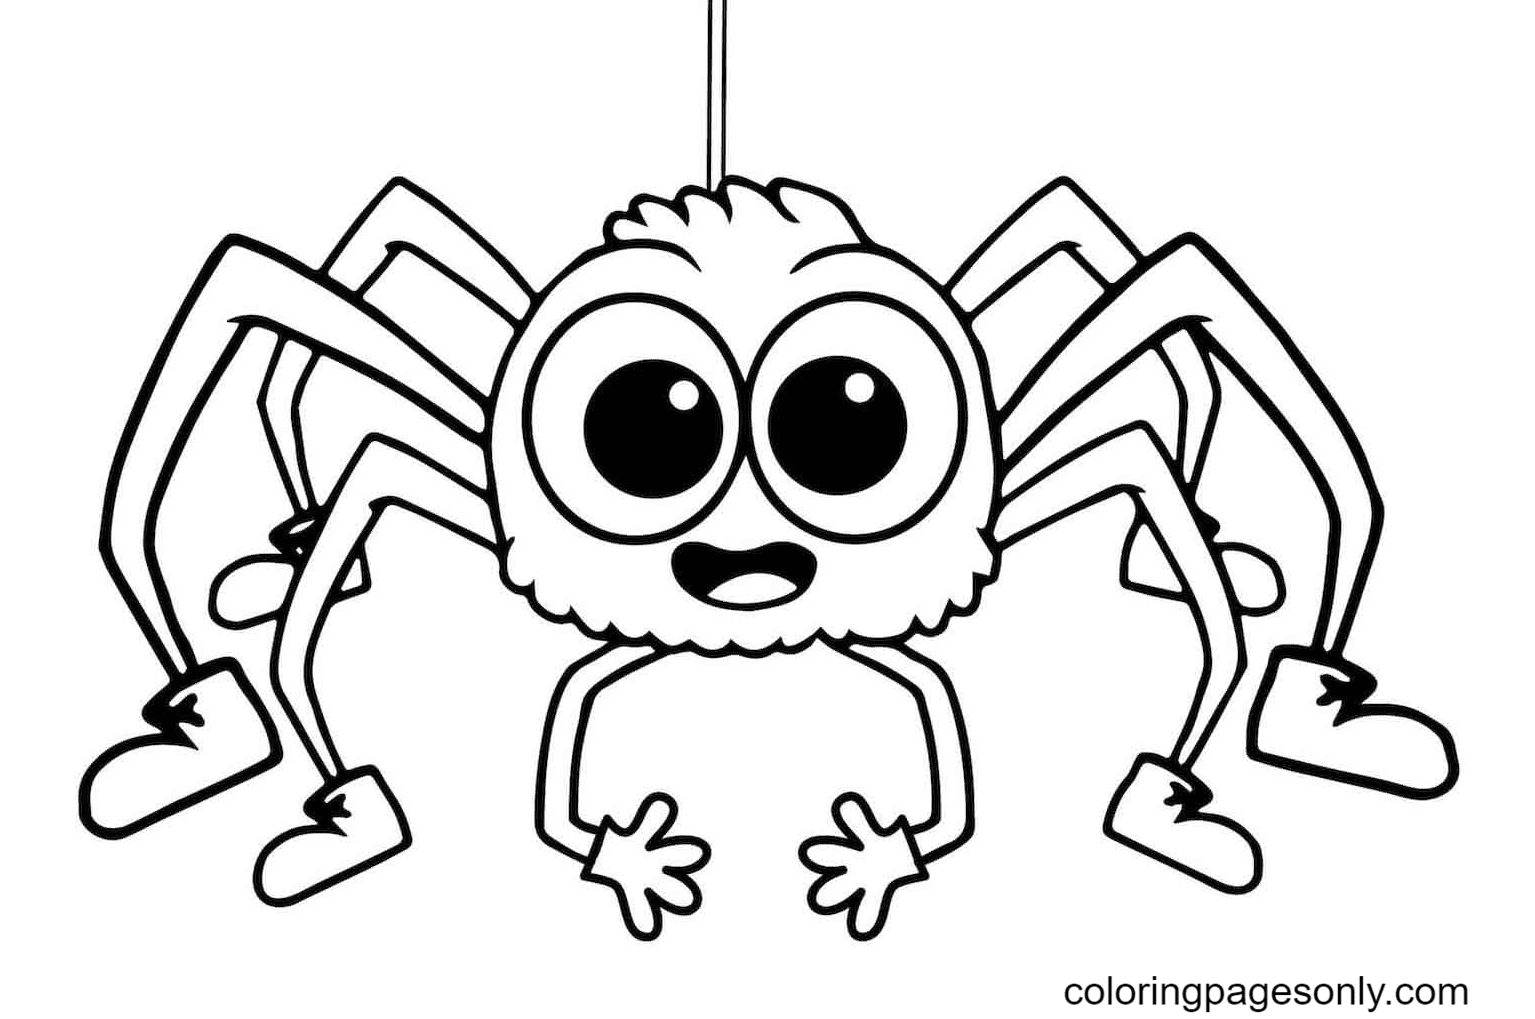 Printable Spider Halloween Coloring Page